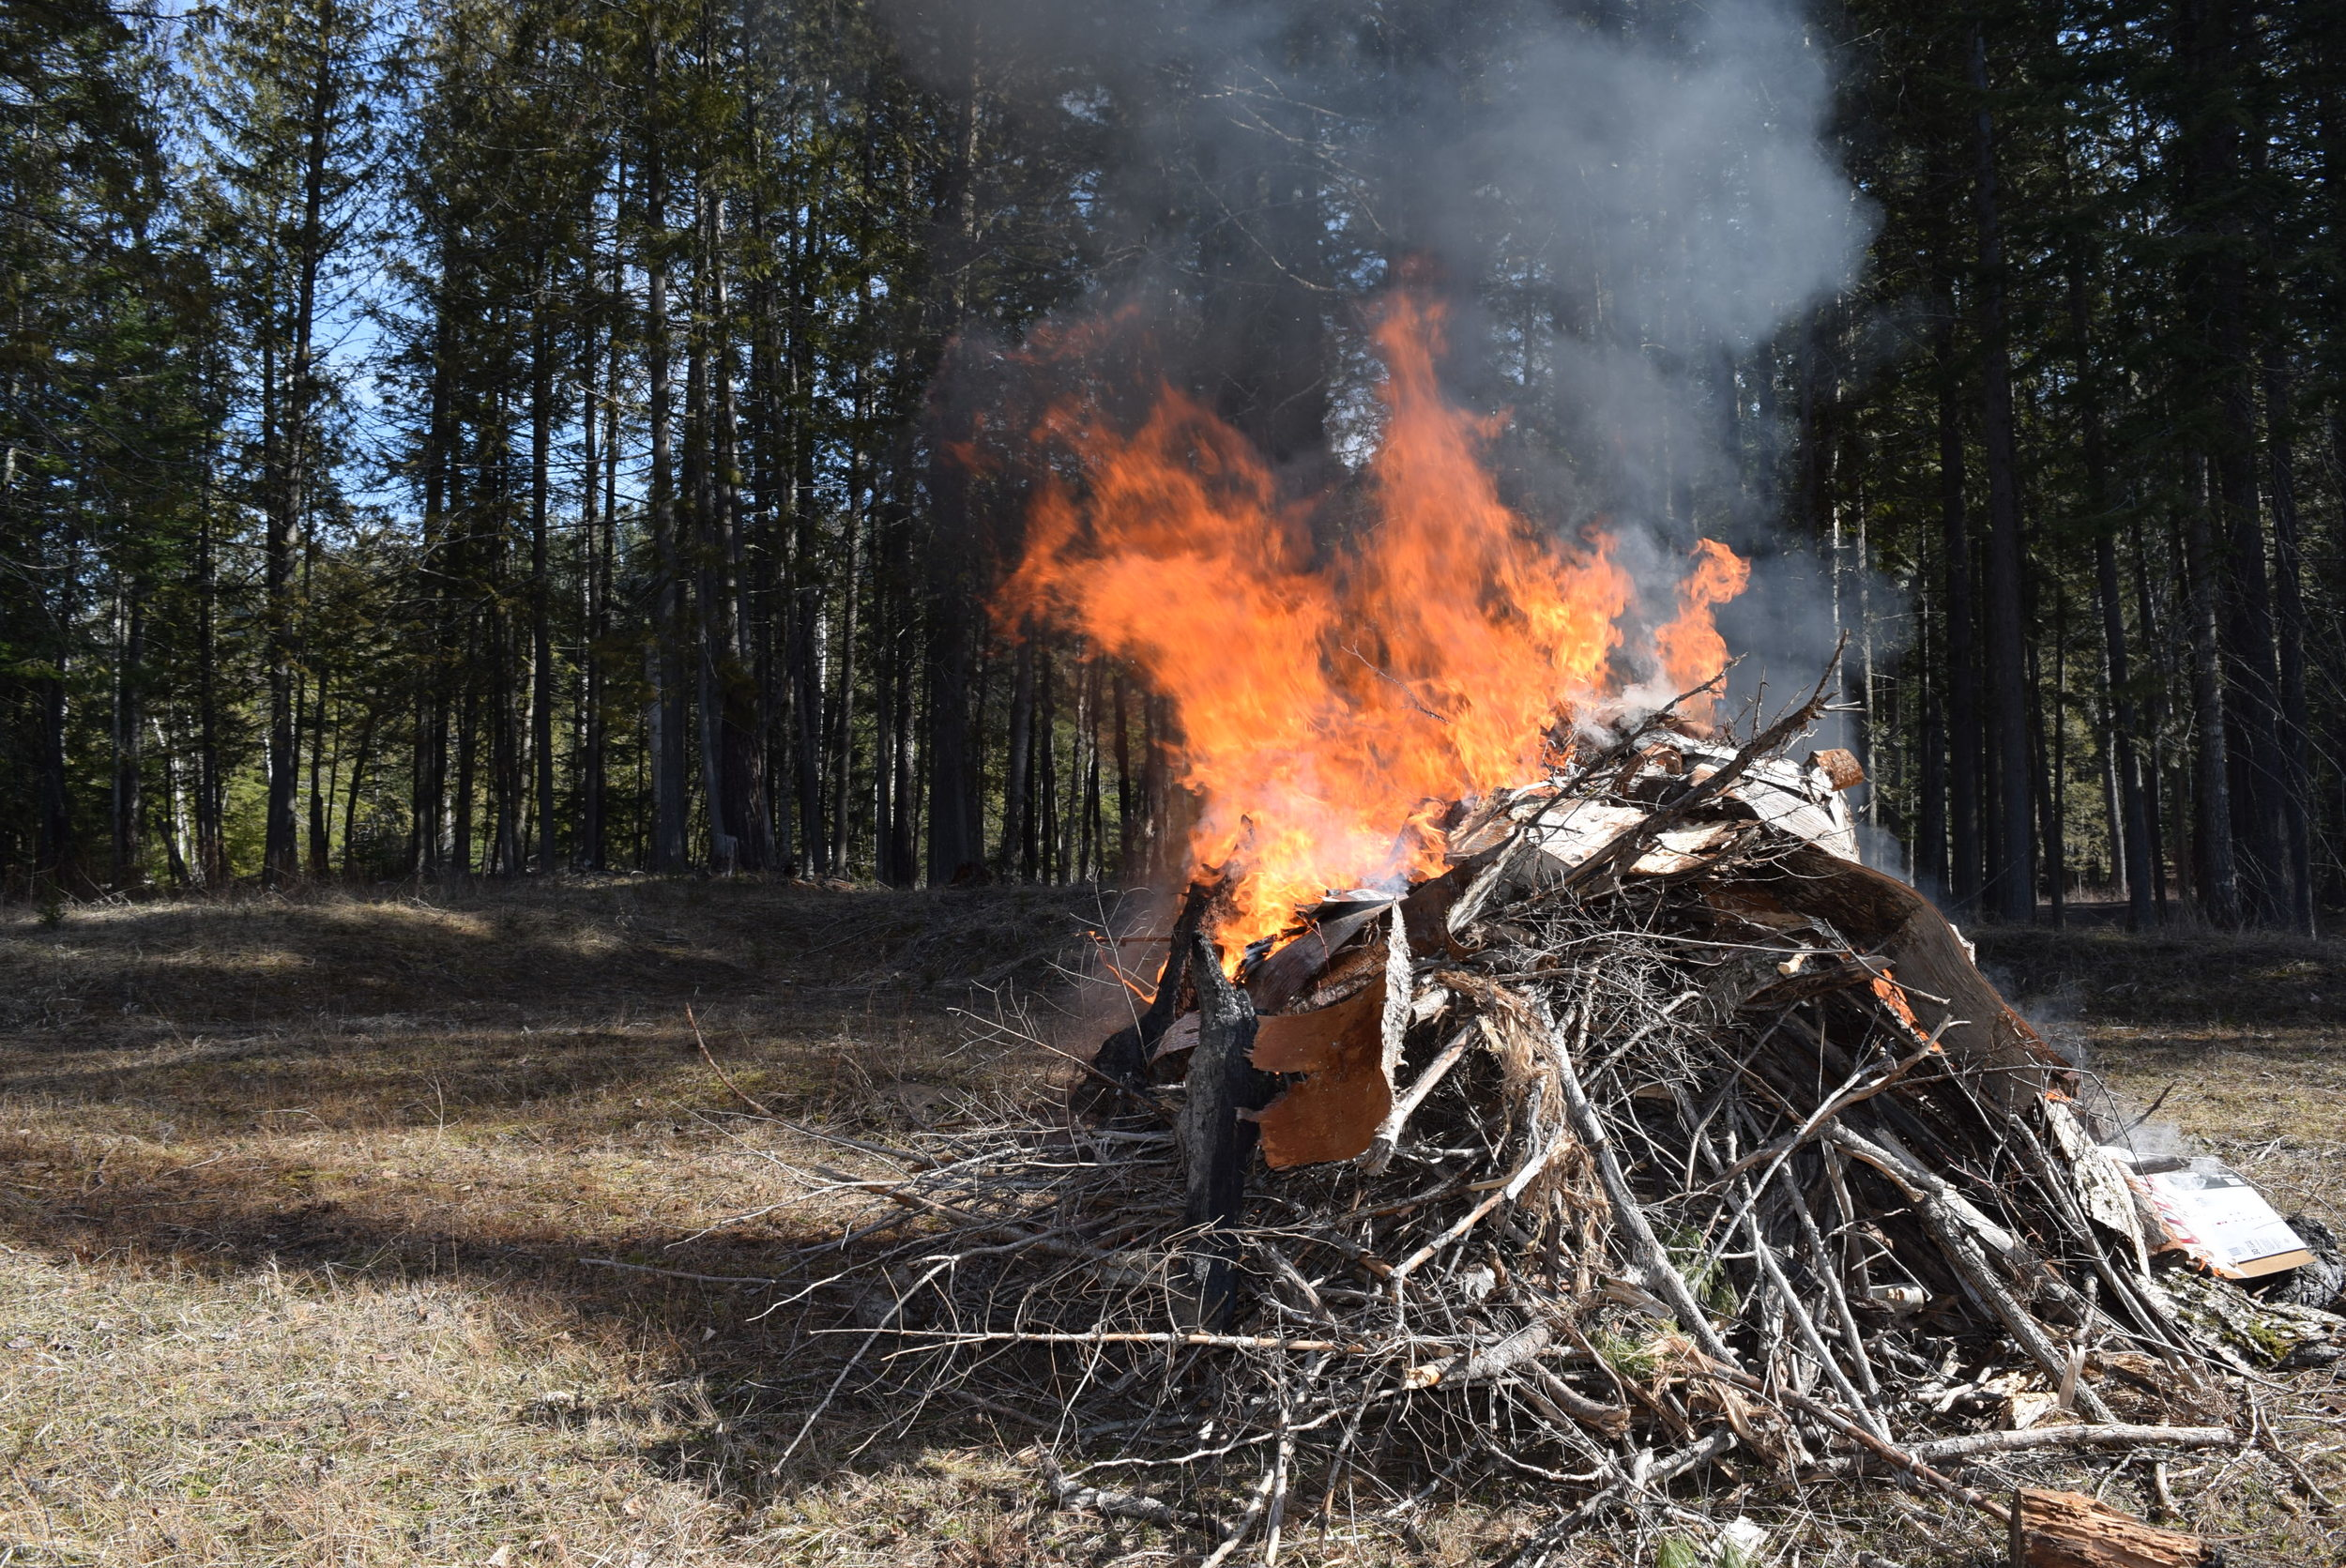 One of many slash piles we've burned. I don't think we will ever run out of sticks to burn!